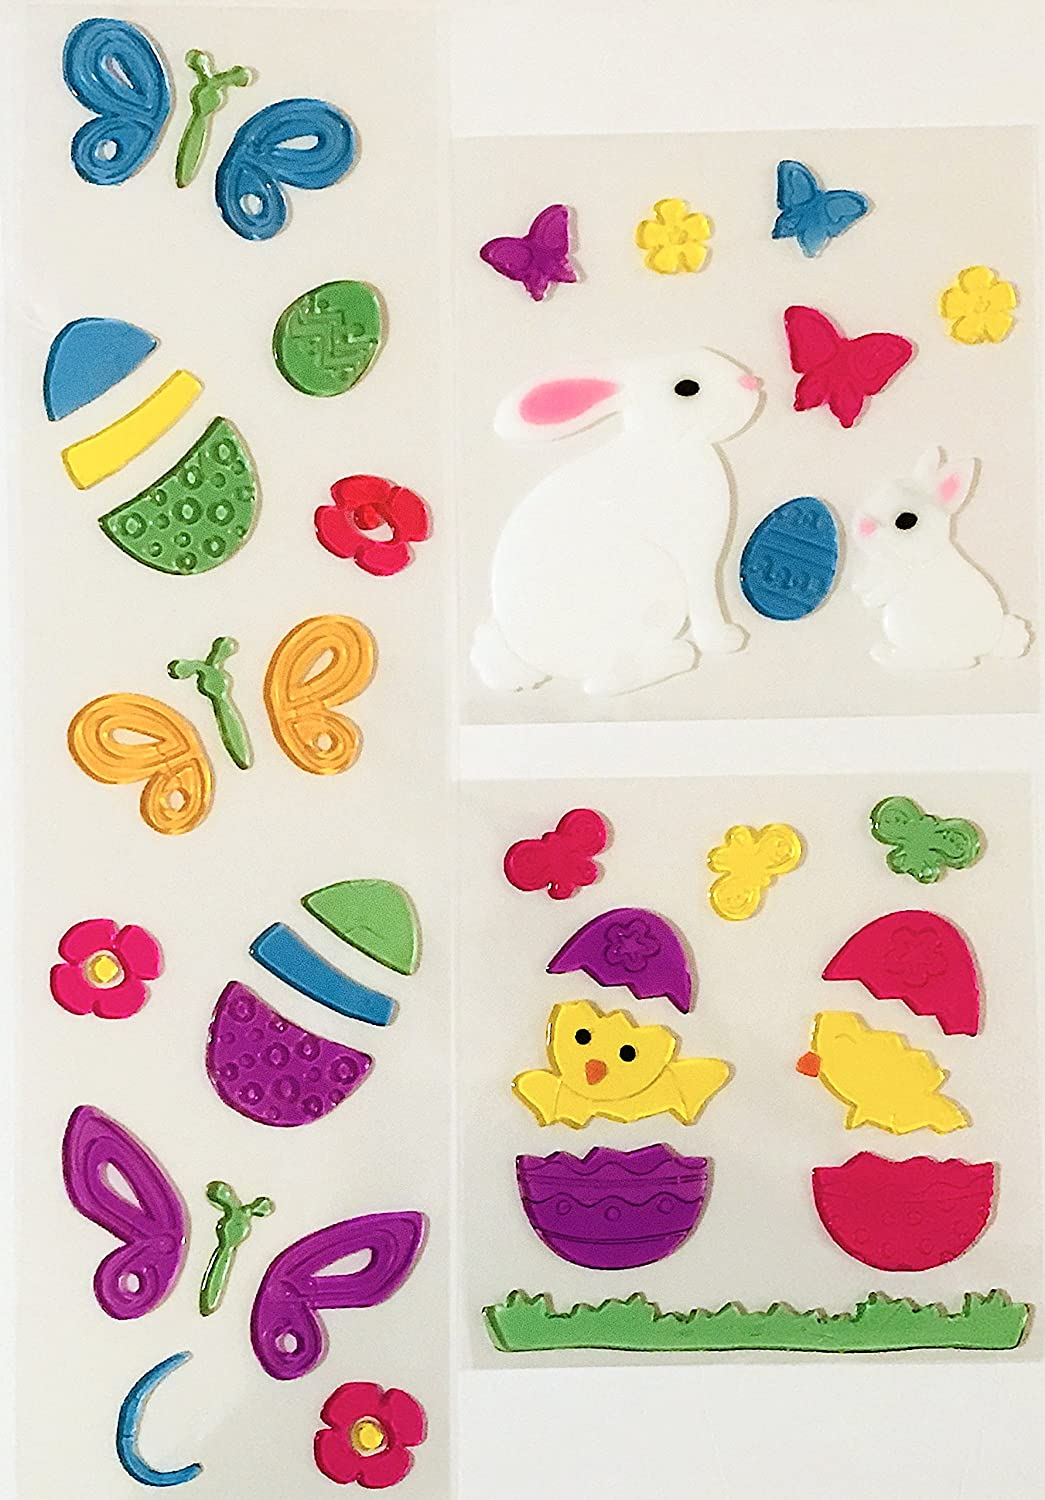 Car and More! Butterflies Chicks Mirrors Fun Spring Gel Clings: Bunny Family Eggs and Flowers Decoration Pack for Windows